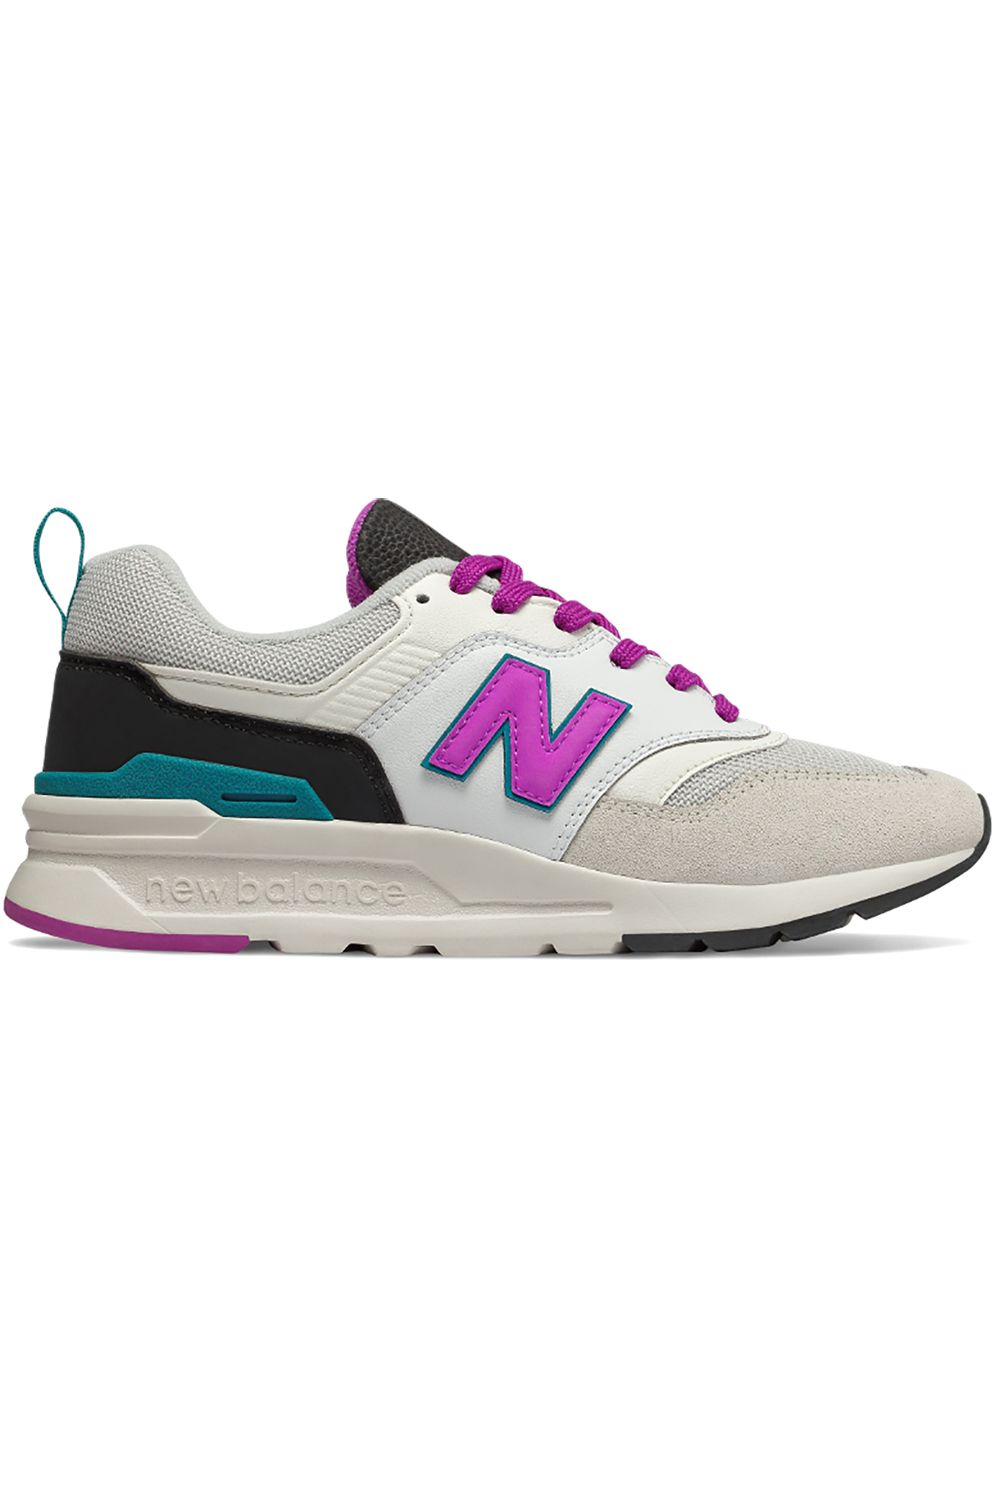 Tenis New Balance CW997HNA Sea Salt